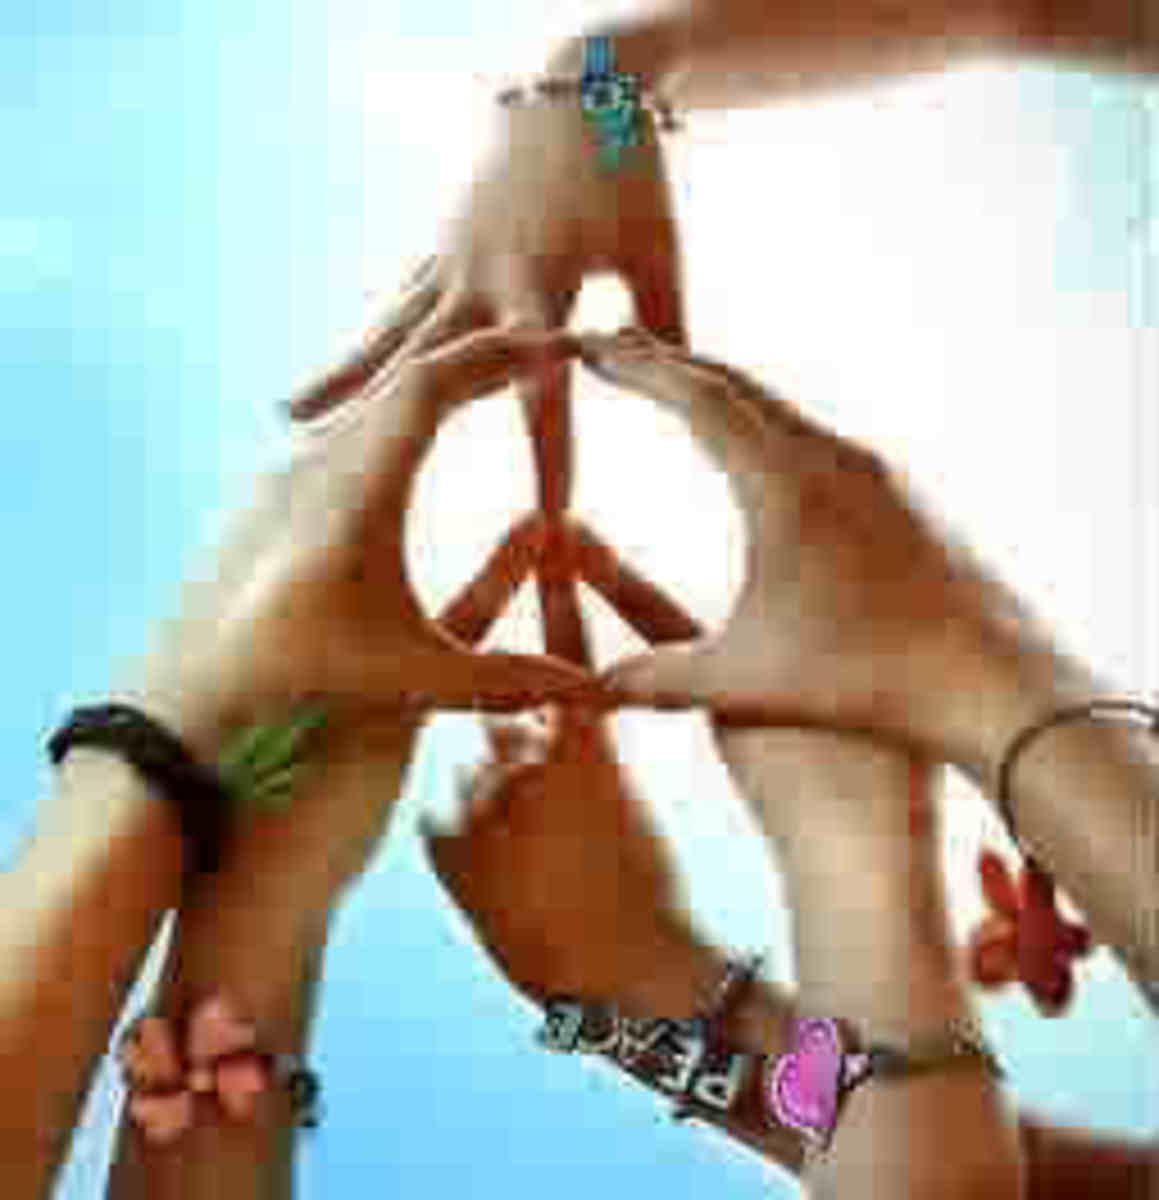 Let peace begin within our hearts.